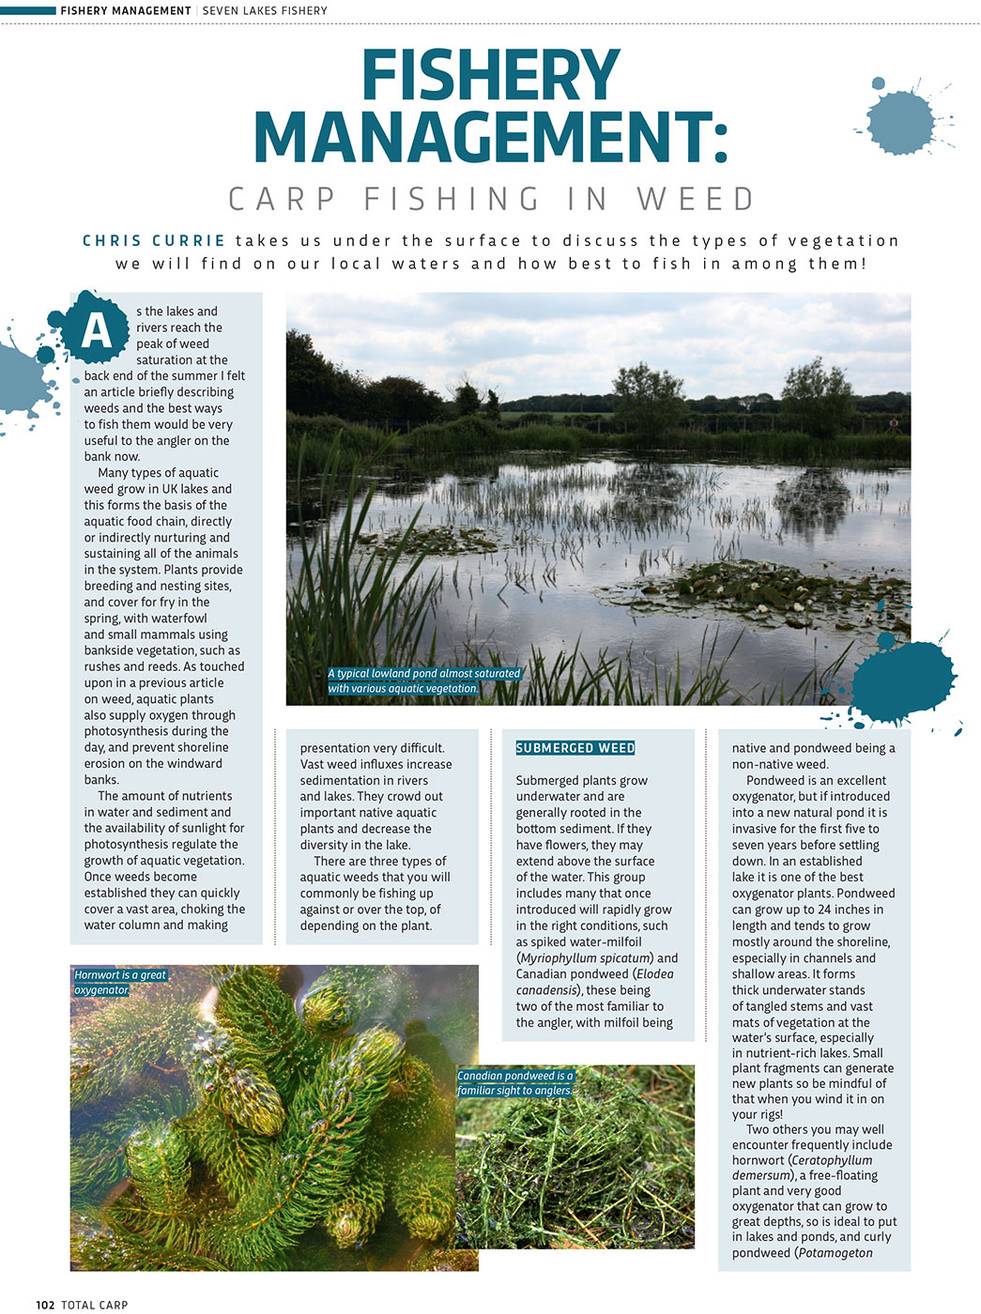 FISHERY MANAGEMENT CARP FISHING IN WEED